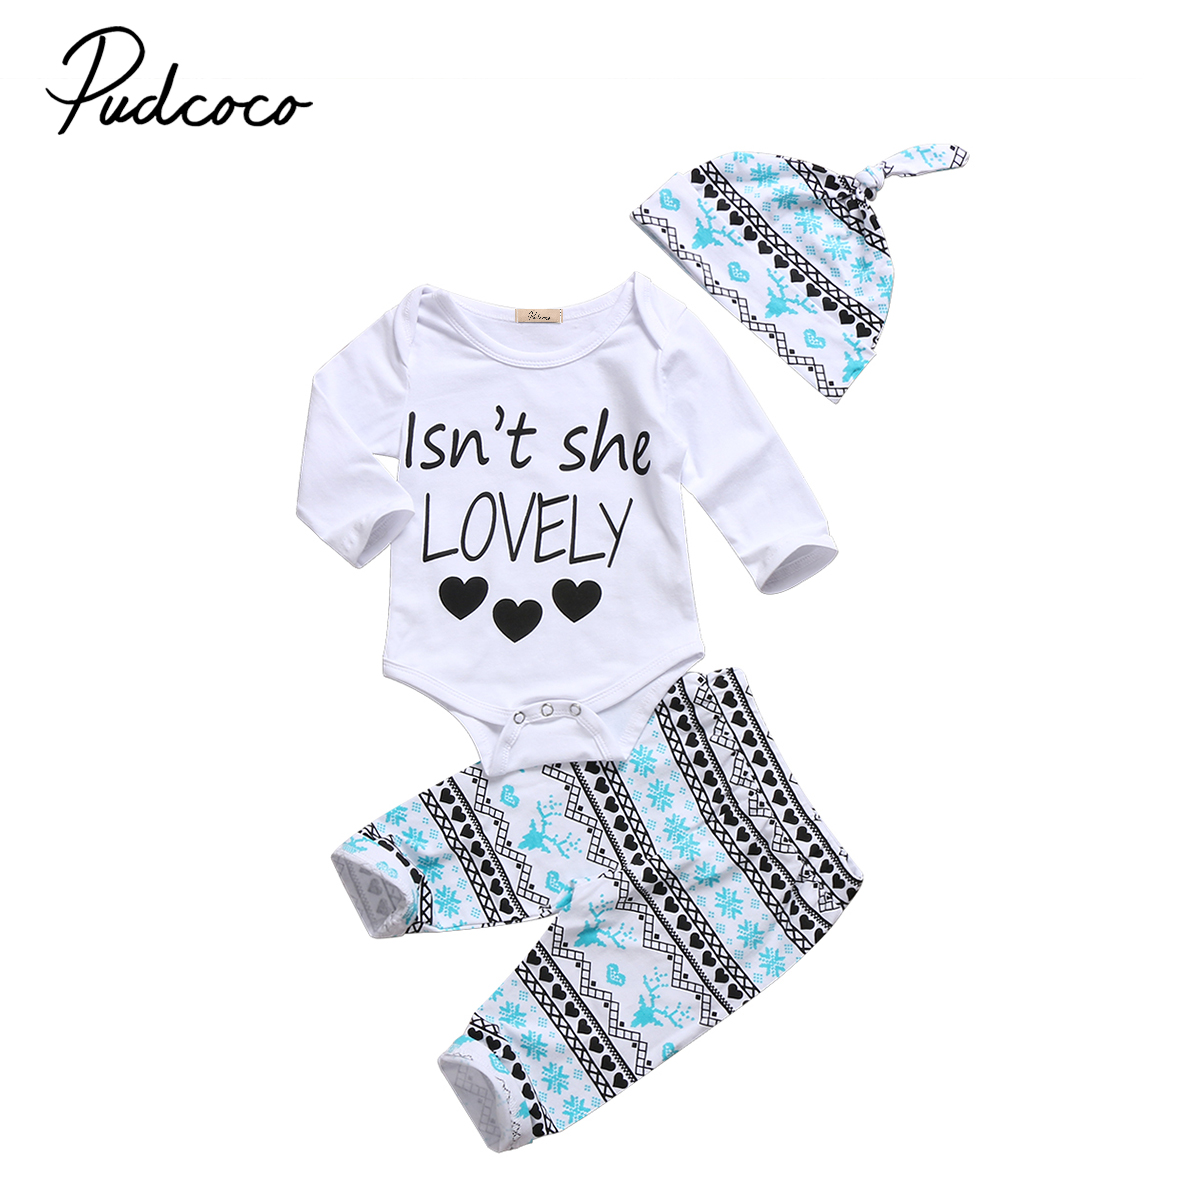 Xmas Baby Clothing Newborn Baby Boy Girl Christmas Clothes Cotton Letters Rompers Long Print Pants Hat 3pcs Outfits Set Autumn